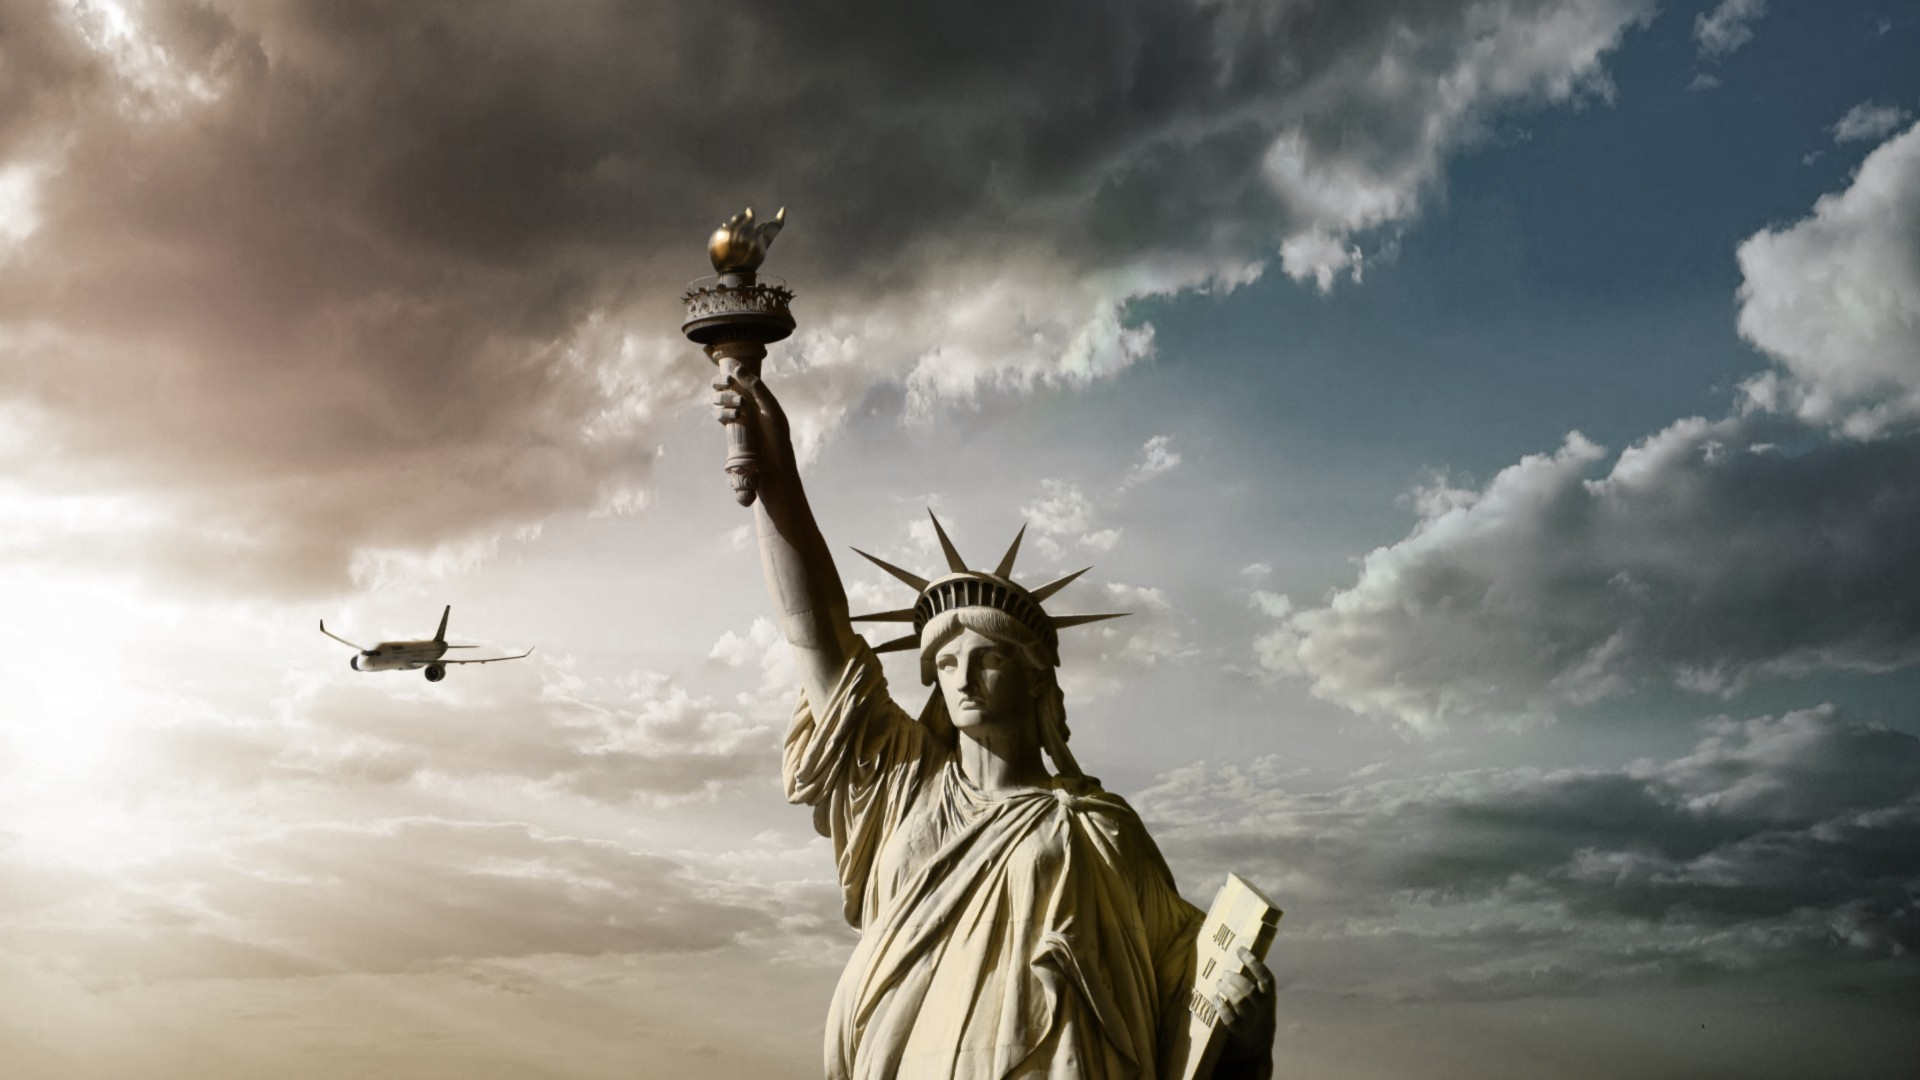 Jesus 3d Wallpapers For Mobile Statue Of Liberty Clouds Airplane Statue Wallpapers Hd